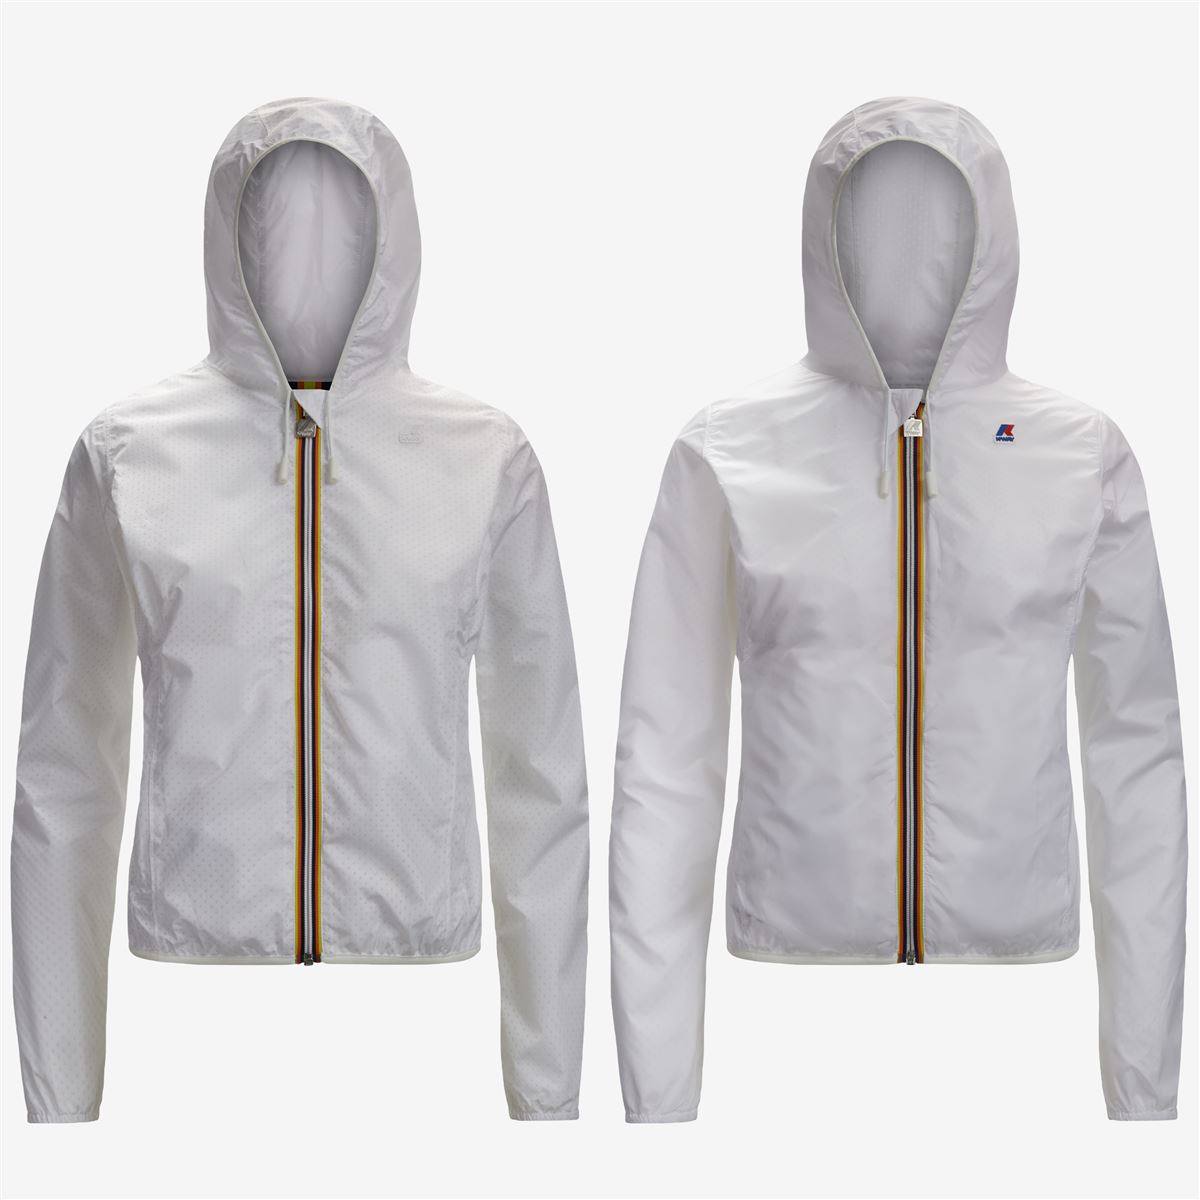 Giubbotto impermeabile K-way donna LILY DOUBLE DROPS-K00BDY0